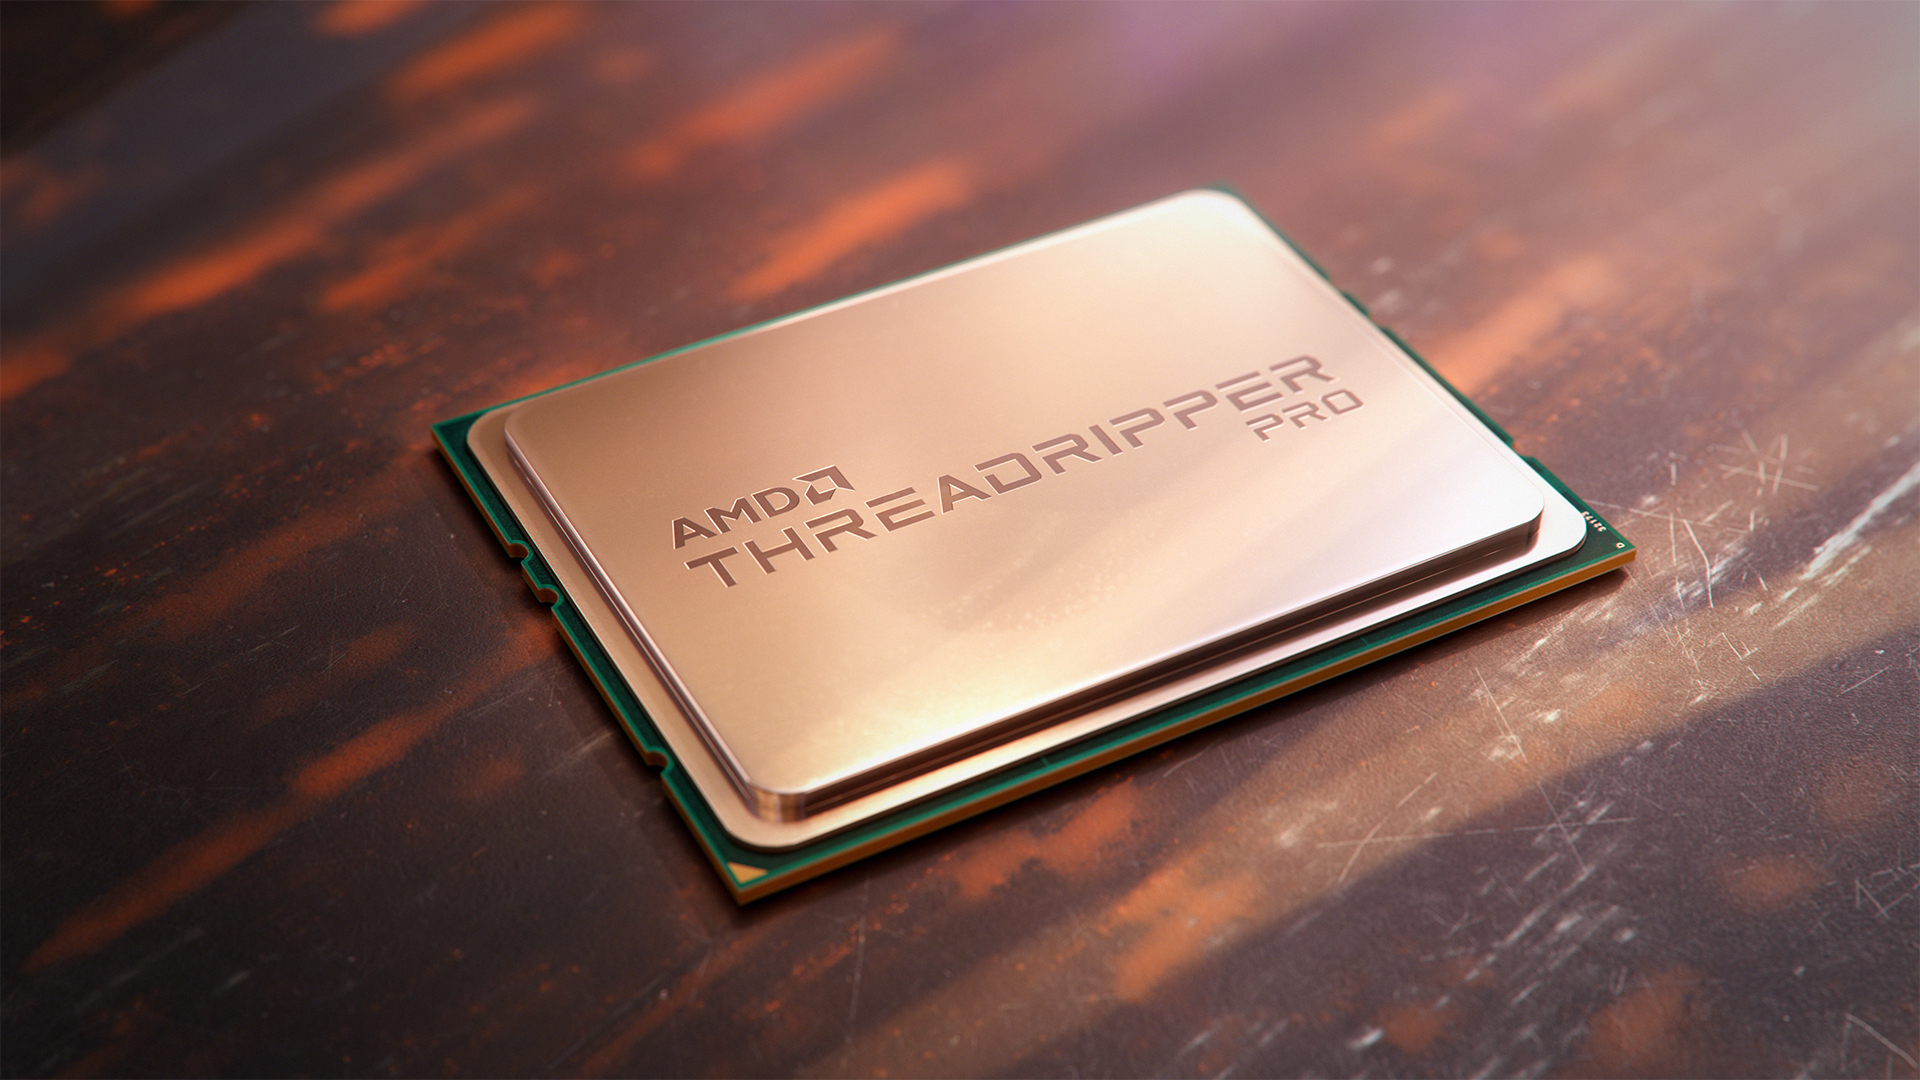 AMD Led Workstation CPU Sales During June, Intel Loses Decade Old Lead - Wccftech